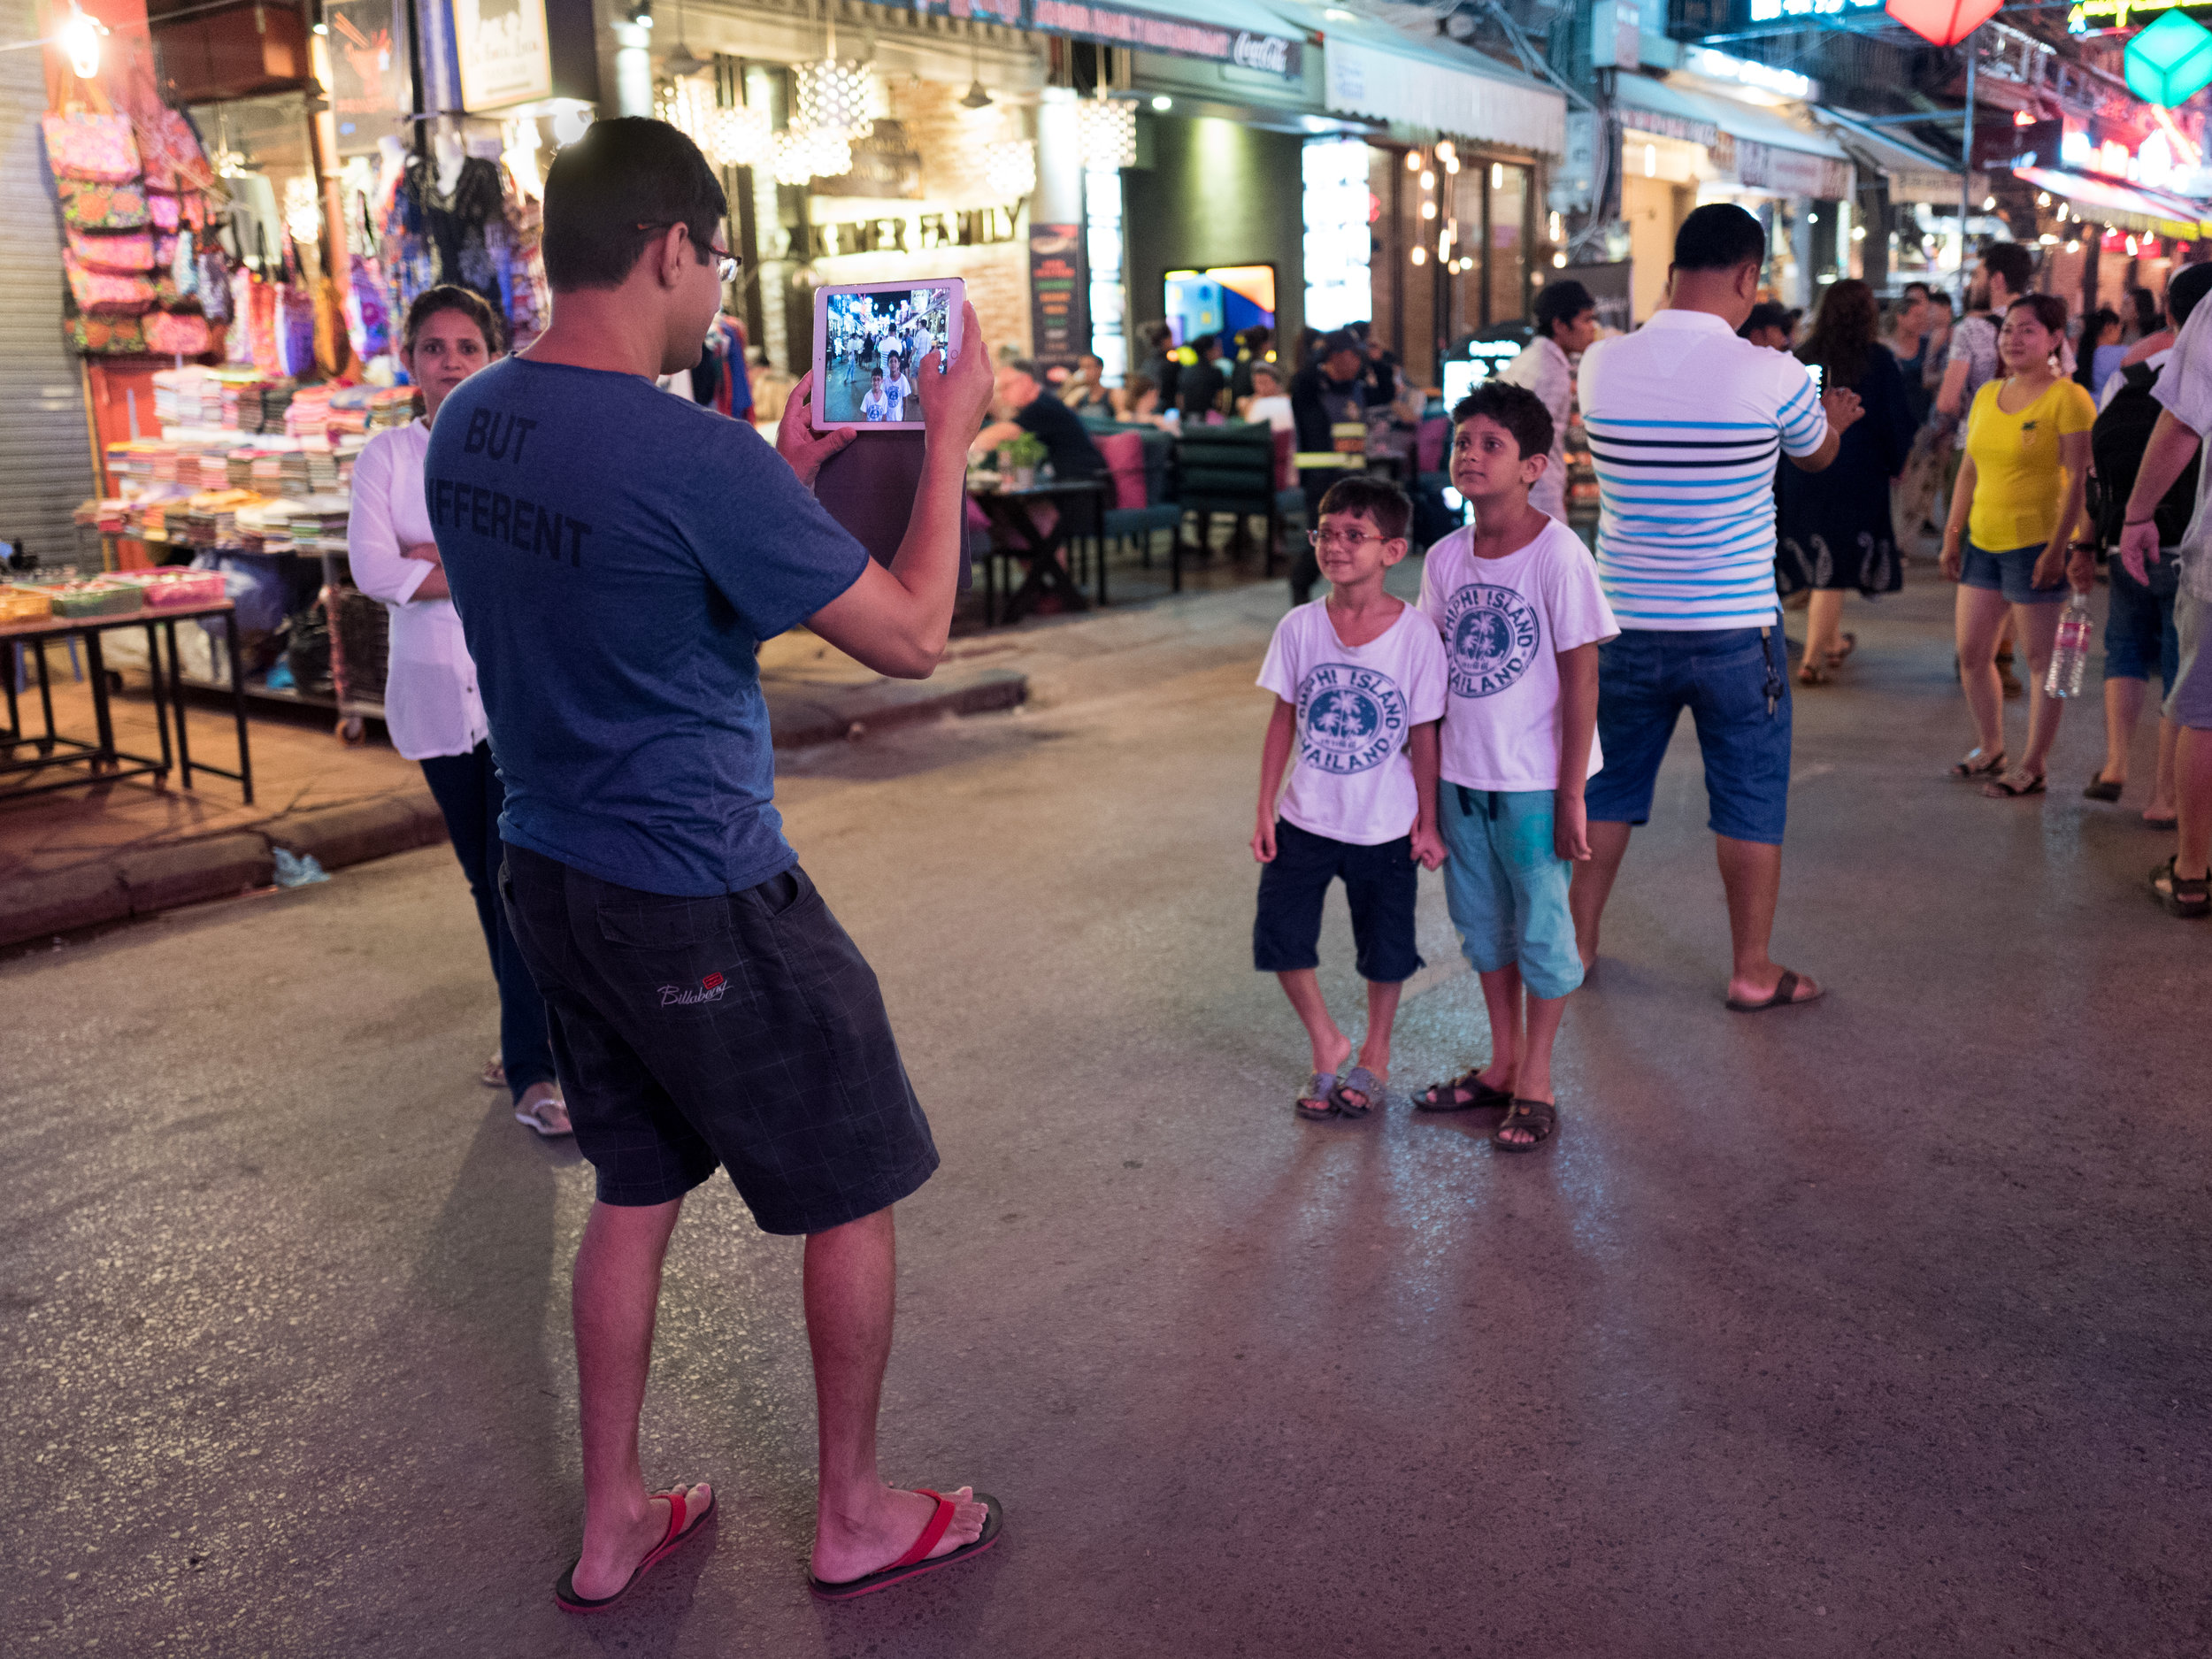 Siem Reap // Pub Street - The woman behind him knows what he's done.